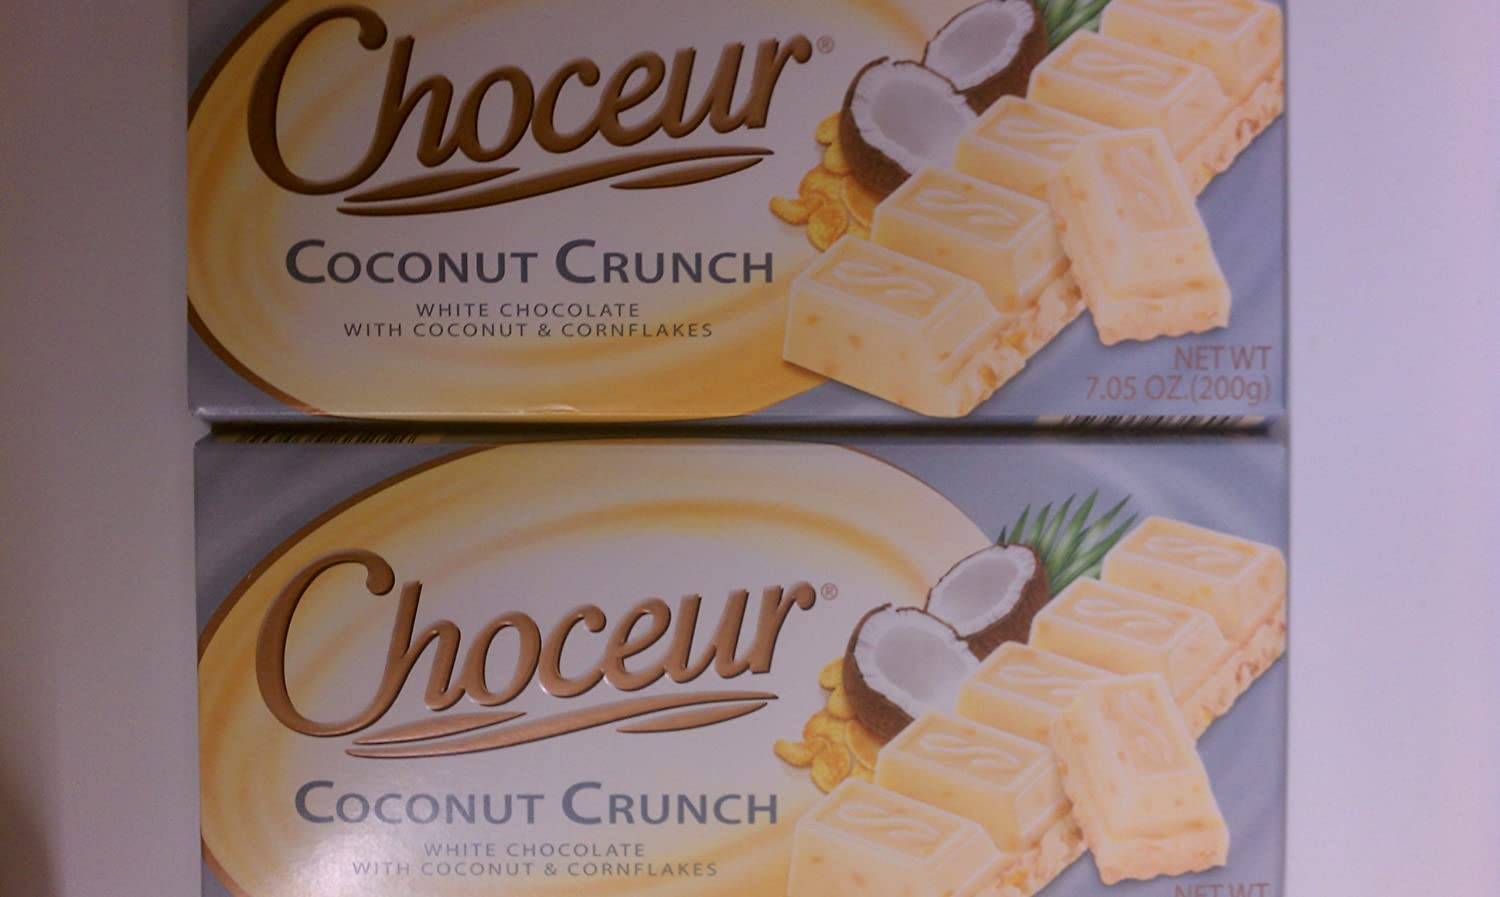 Amazon.com : Choceur White Chocolate -- Coconut Crunch (Pack of 4 ...